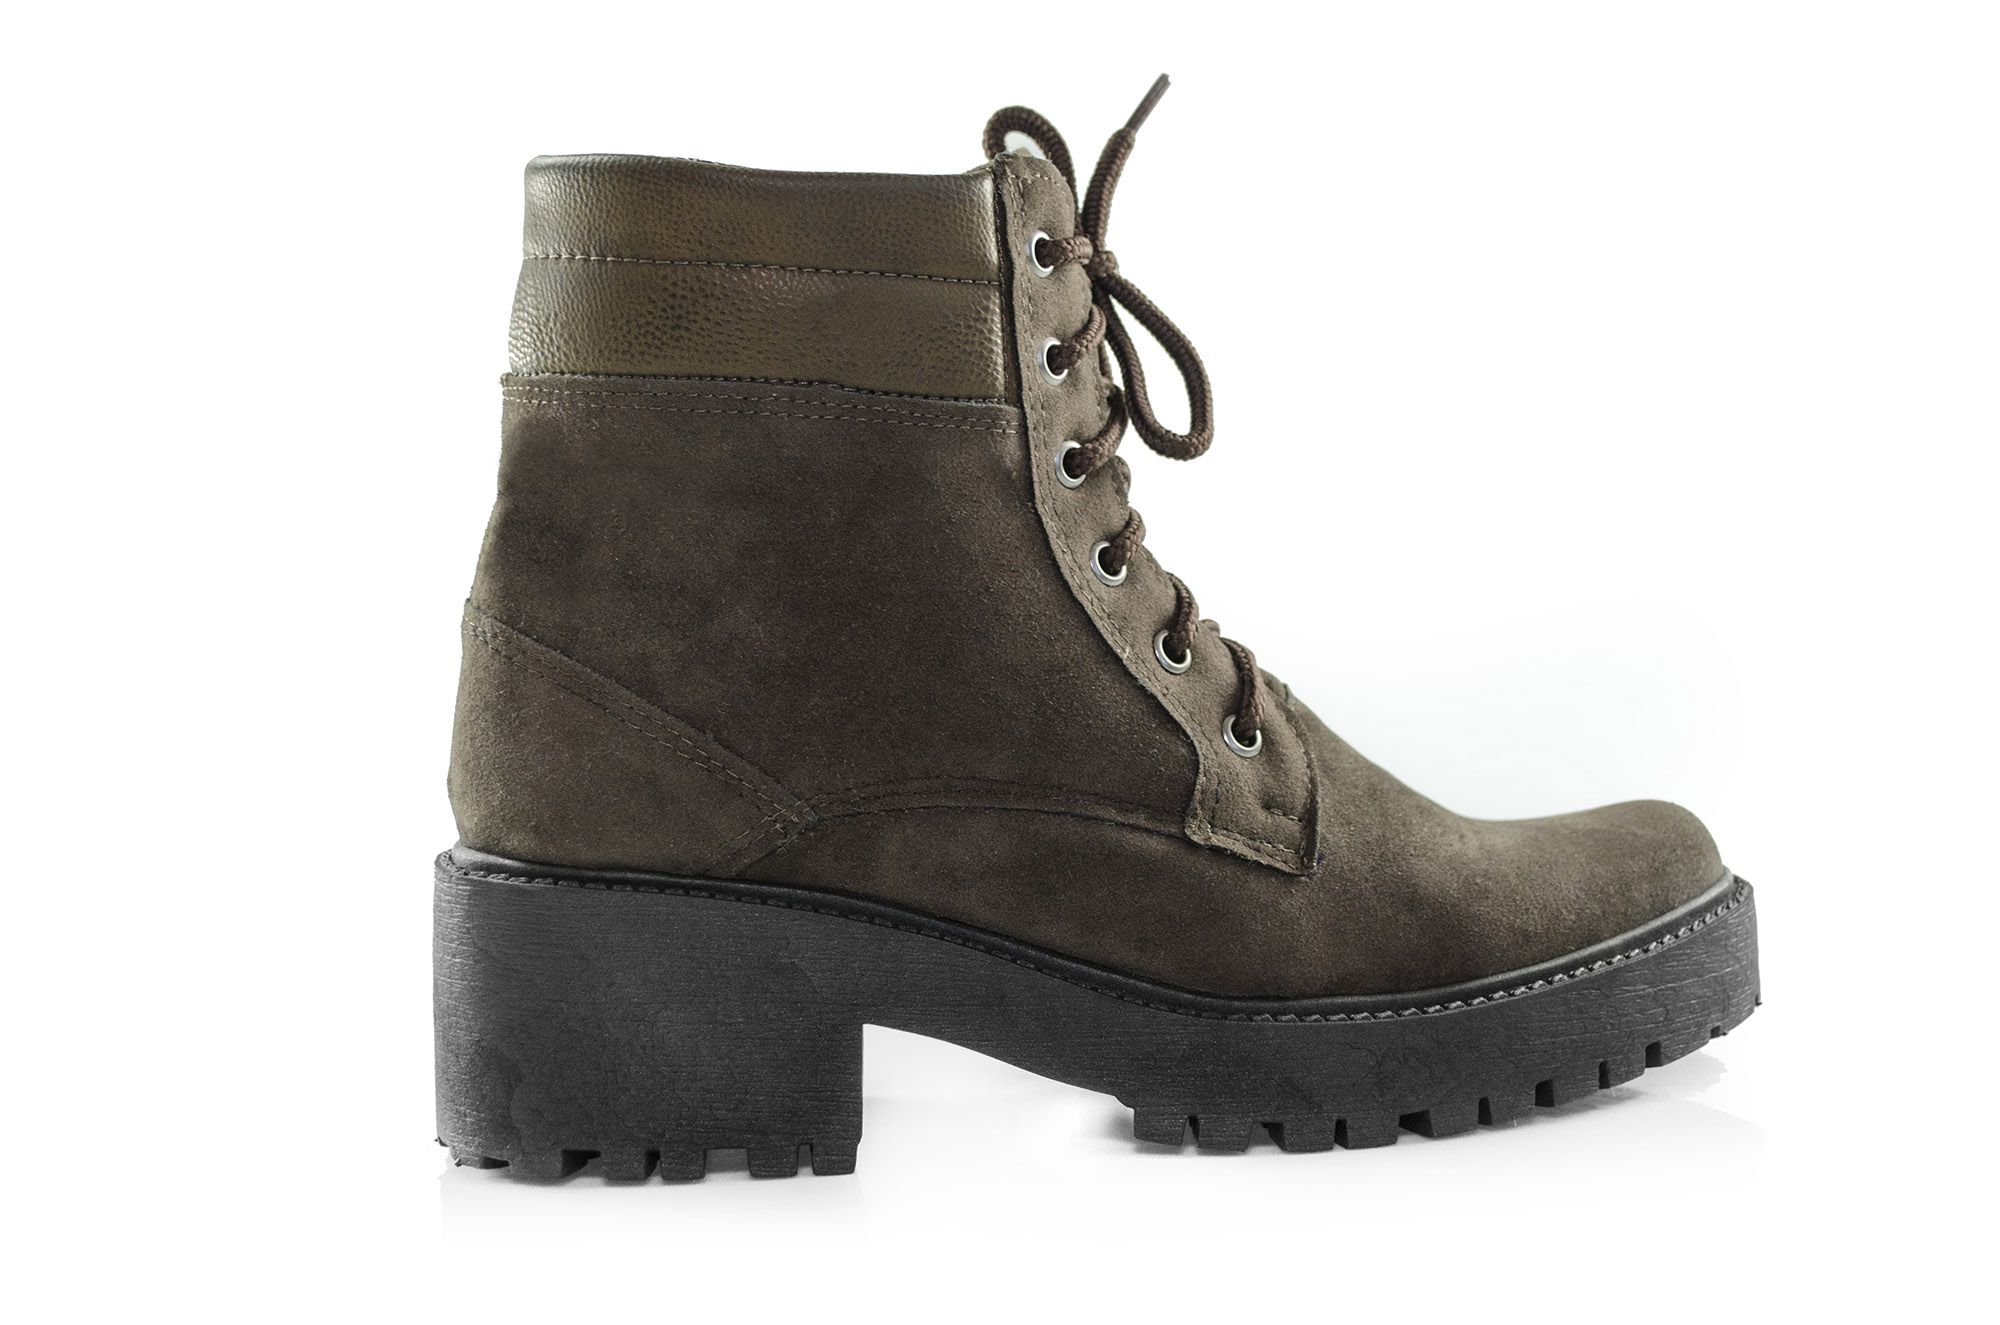 Bota Vegano Shoes Eco Poppy Café